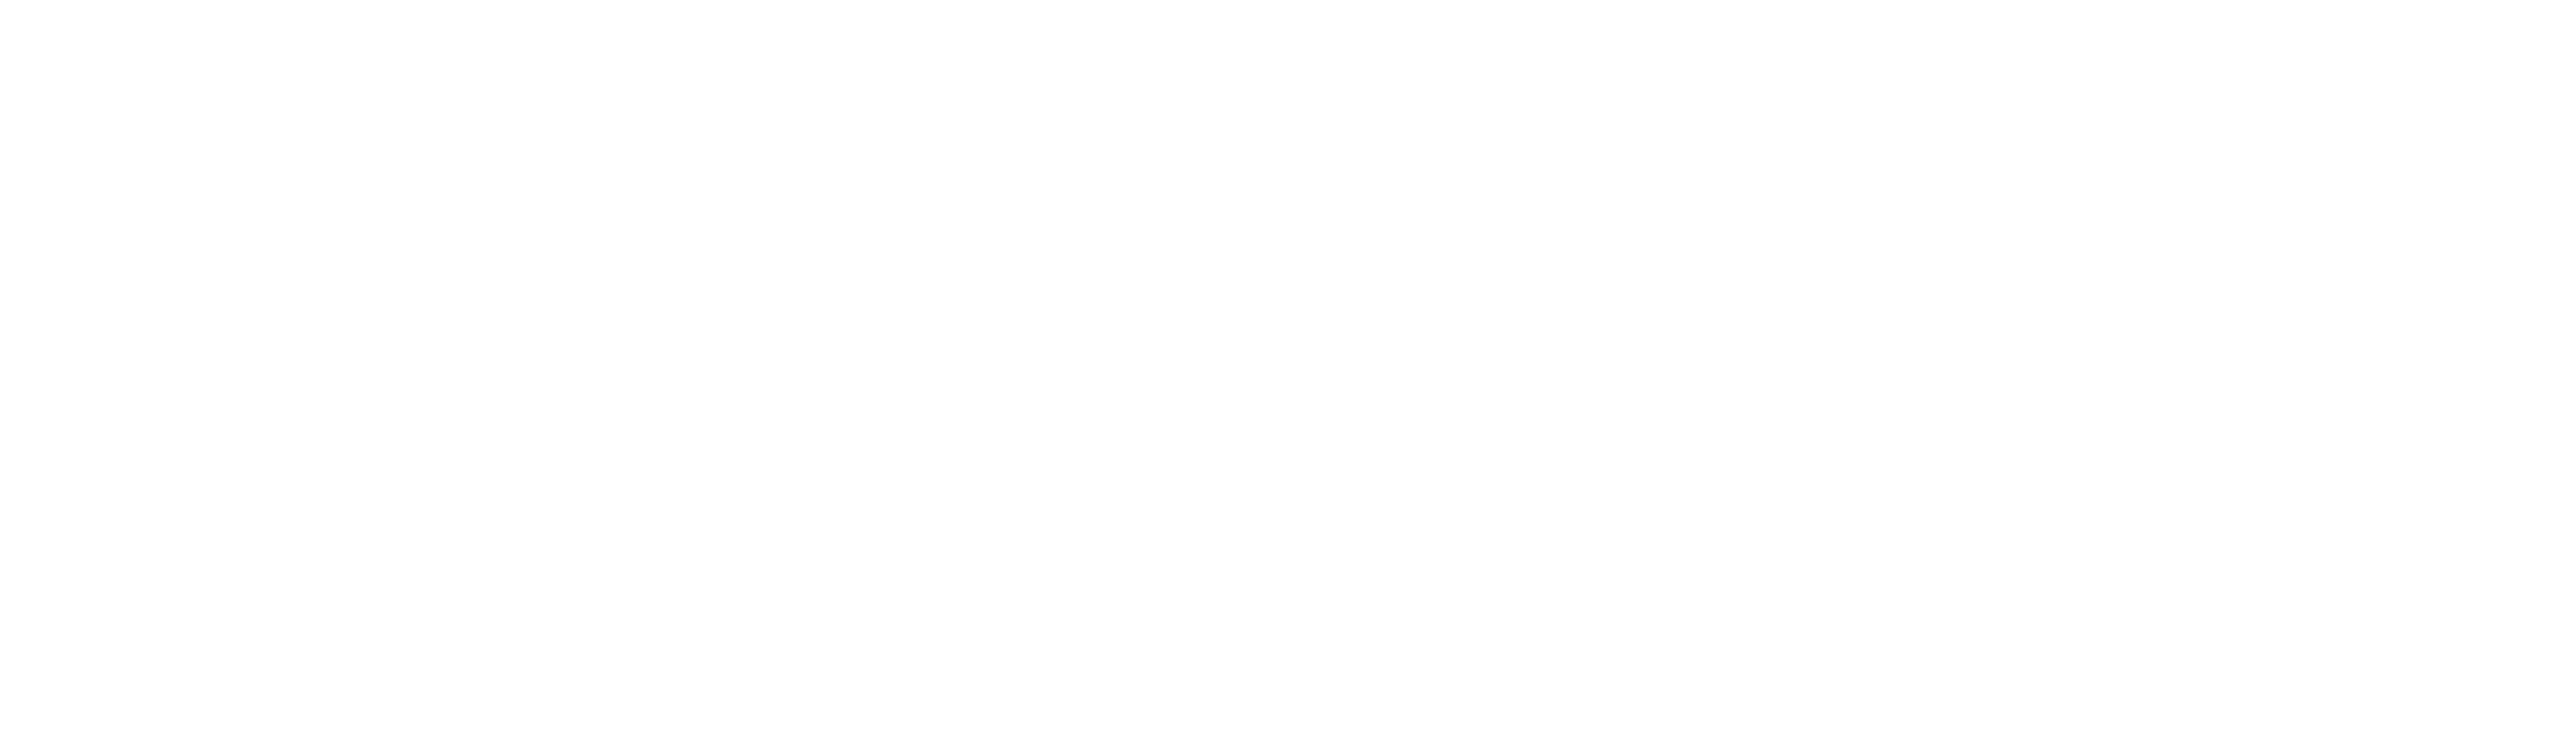 The Unconventional Creative Freelancer